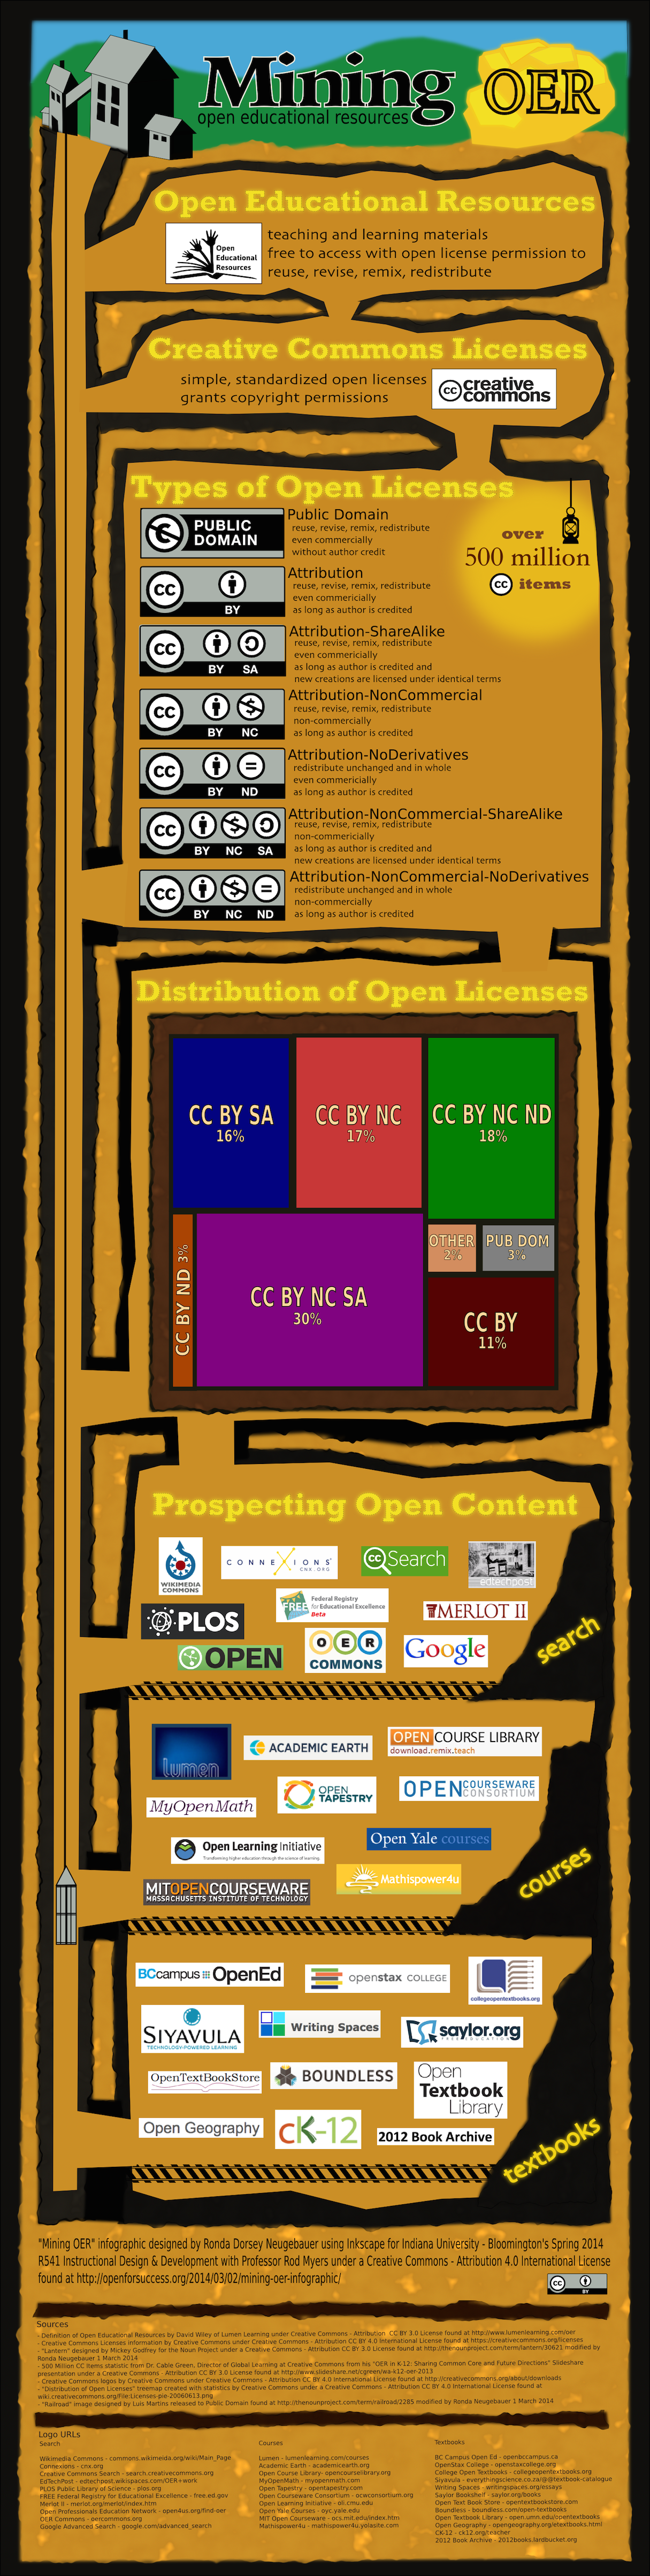 mining oer infographic